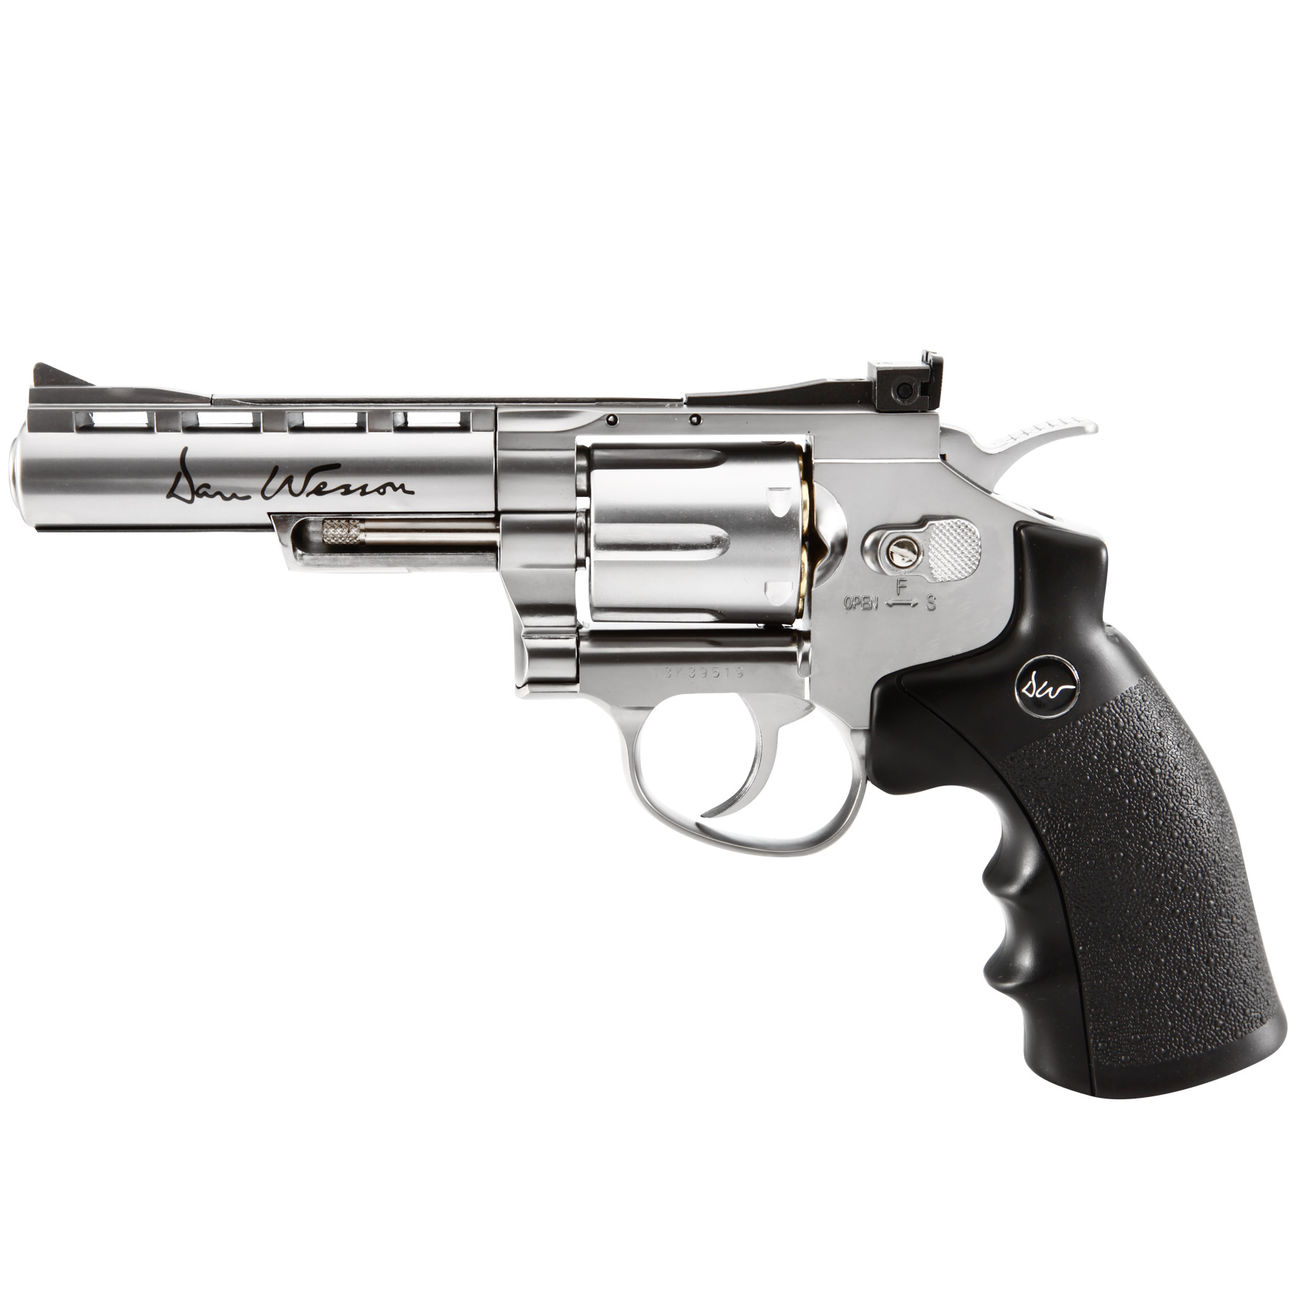 ASG Dan Wesson 4 Zoll 6mm BB CO2 Softair Revolver chrom 0